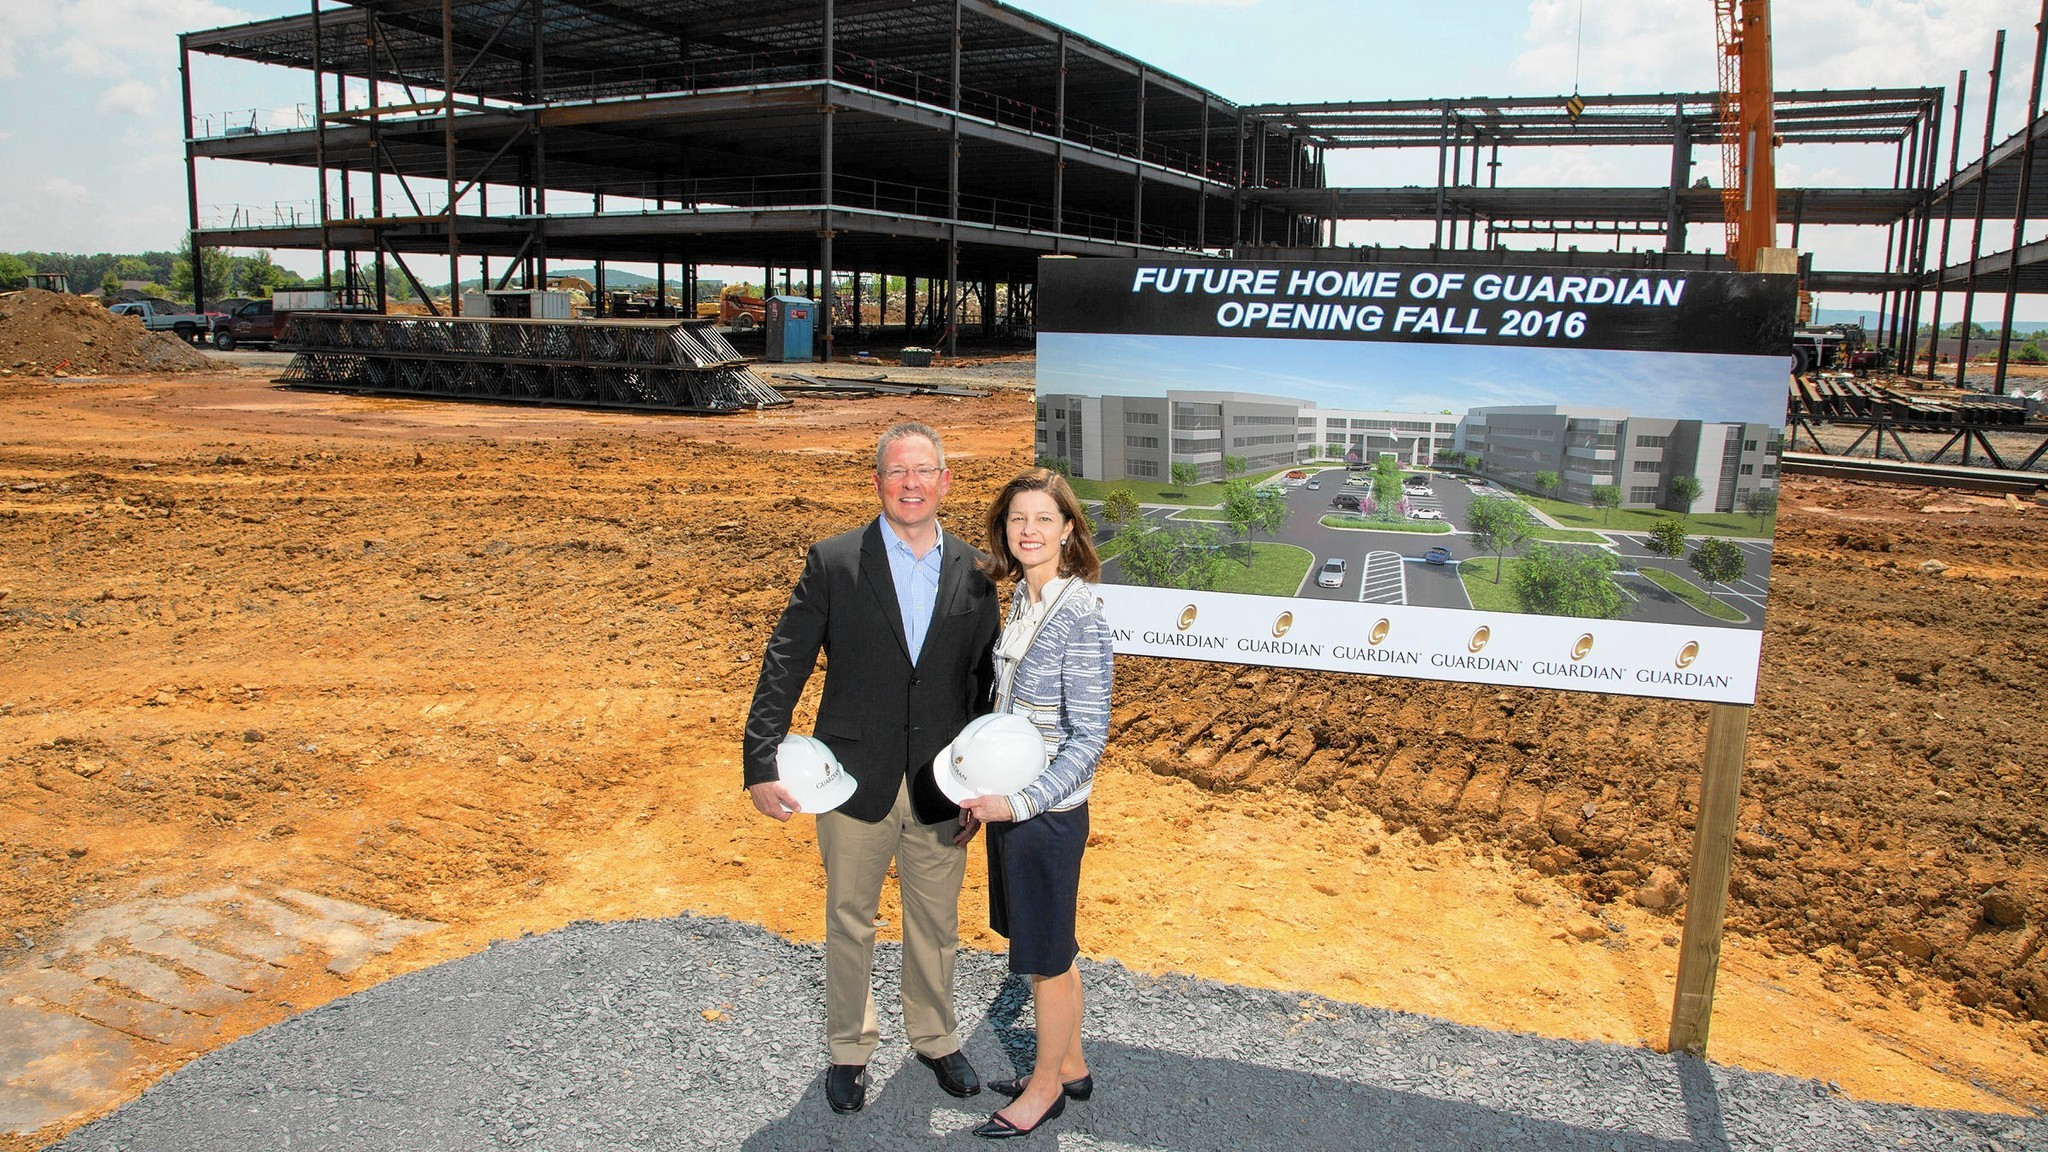 Guardian Gives Update On New Regional Headquarters